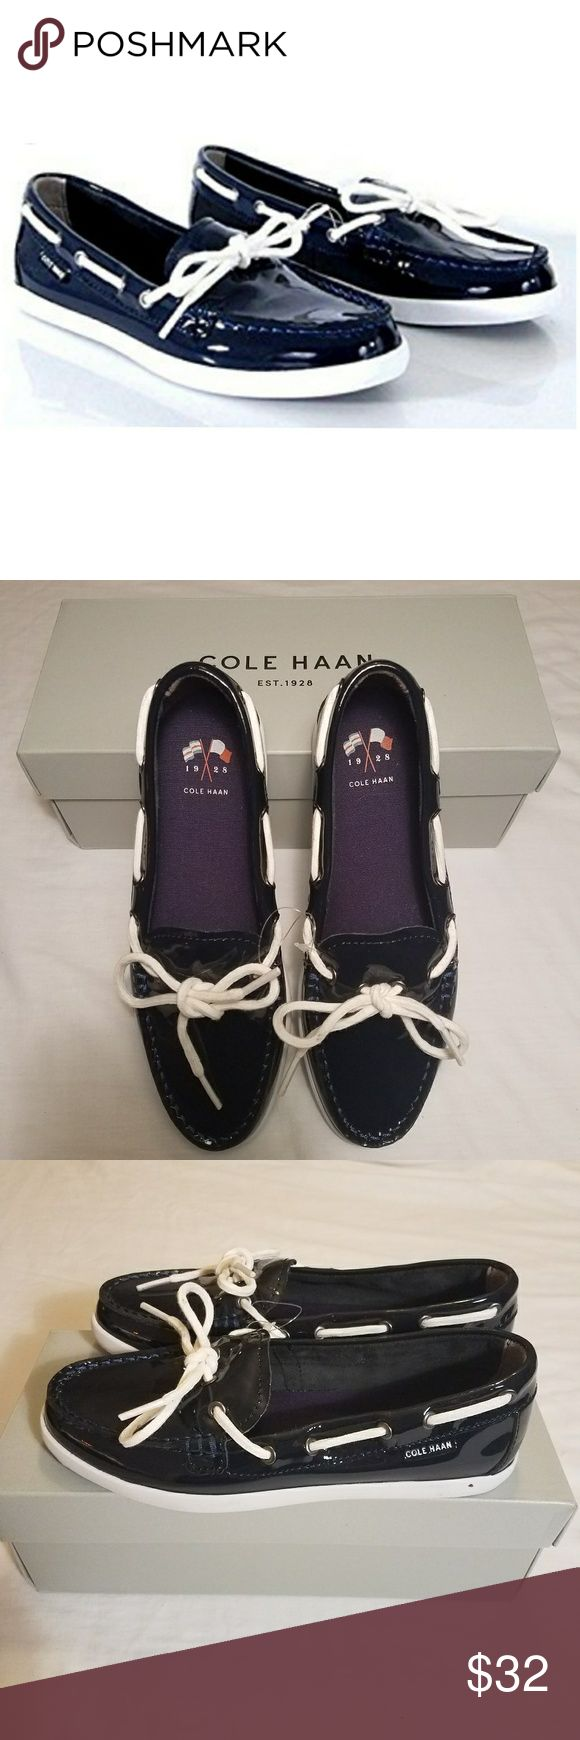 Cole Haan Nantucket Moccasin Navy patent shoe, perfect for summer, NIB. Cole Haan Shoes Moccasins